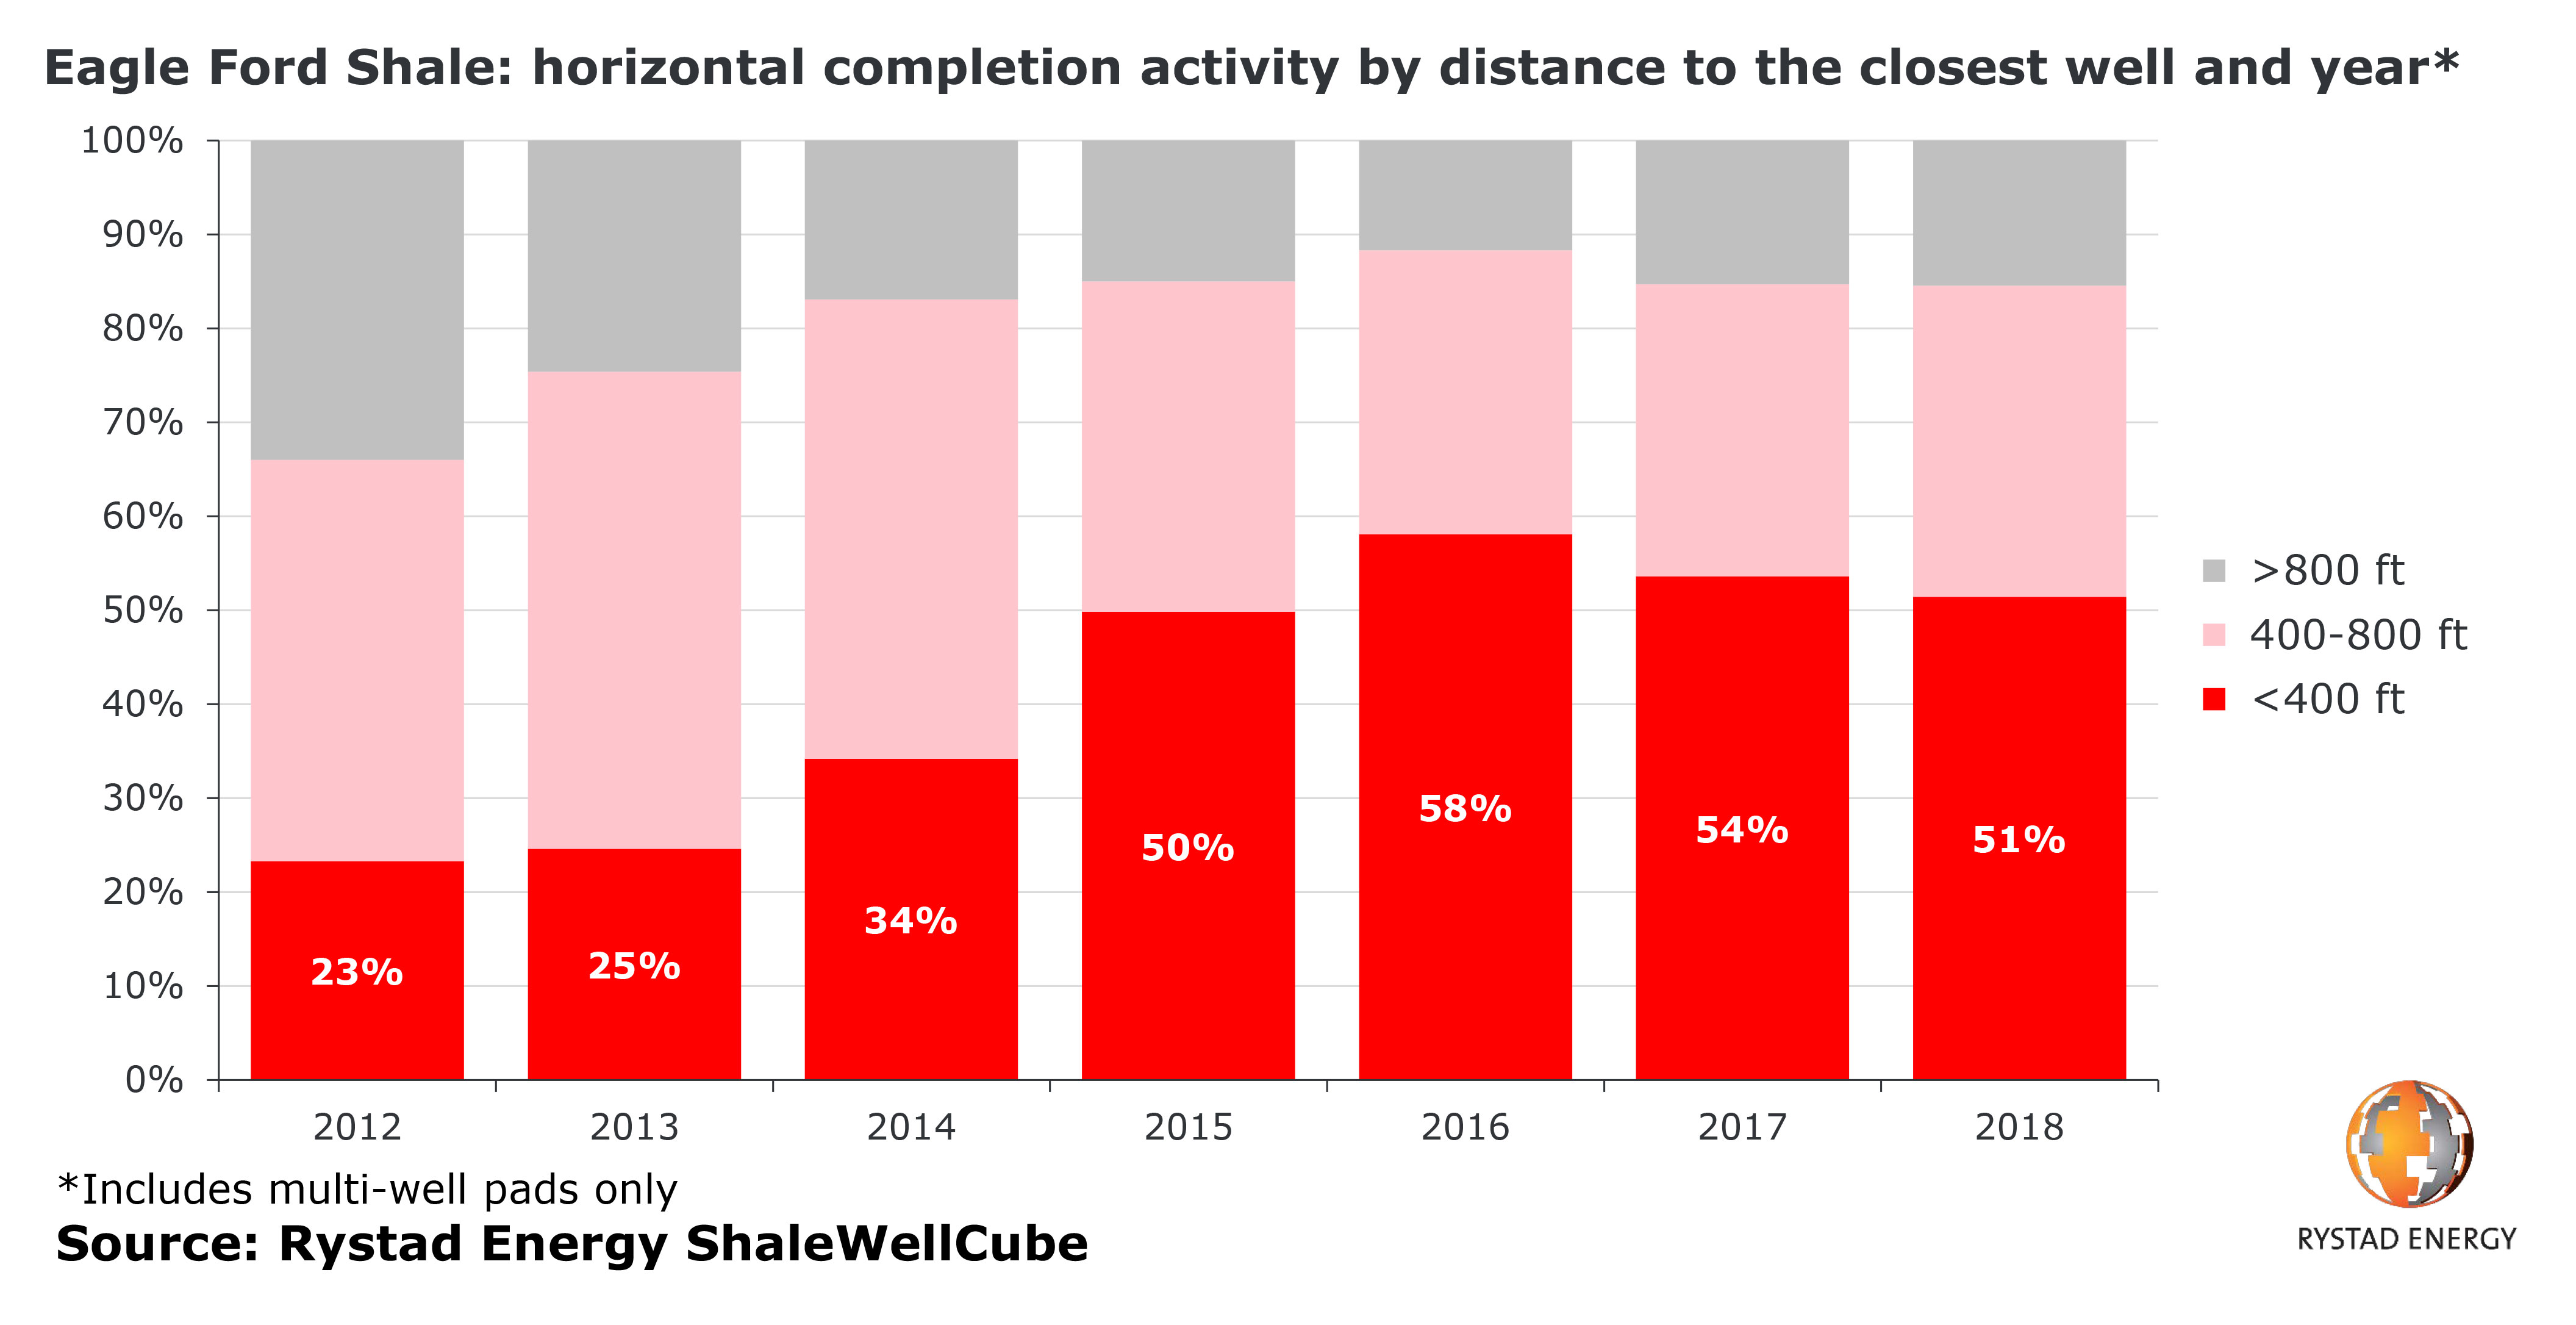 A bar chart showing Eagle Ford Shale: horizontal completion activity by distance to the closest well and year from 2012 to 2018. Source: Rystad Energy ShaleWellCube